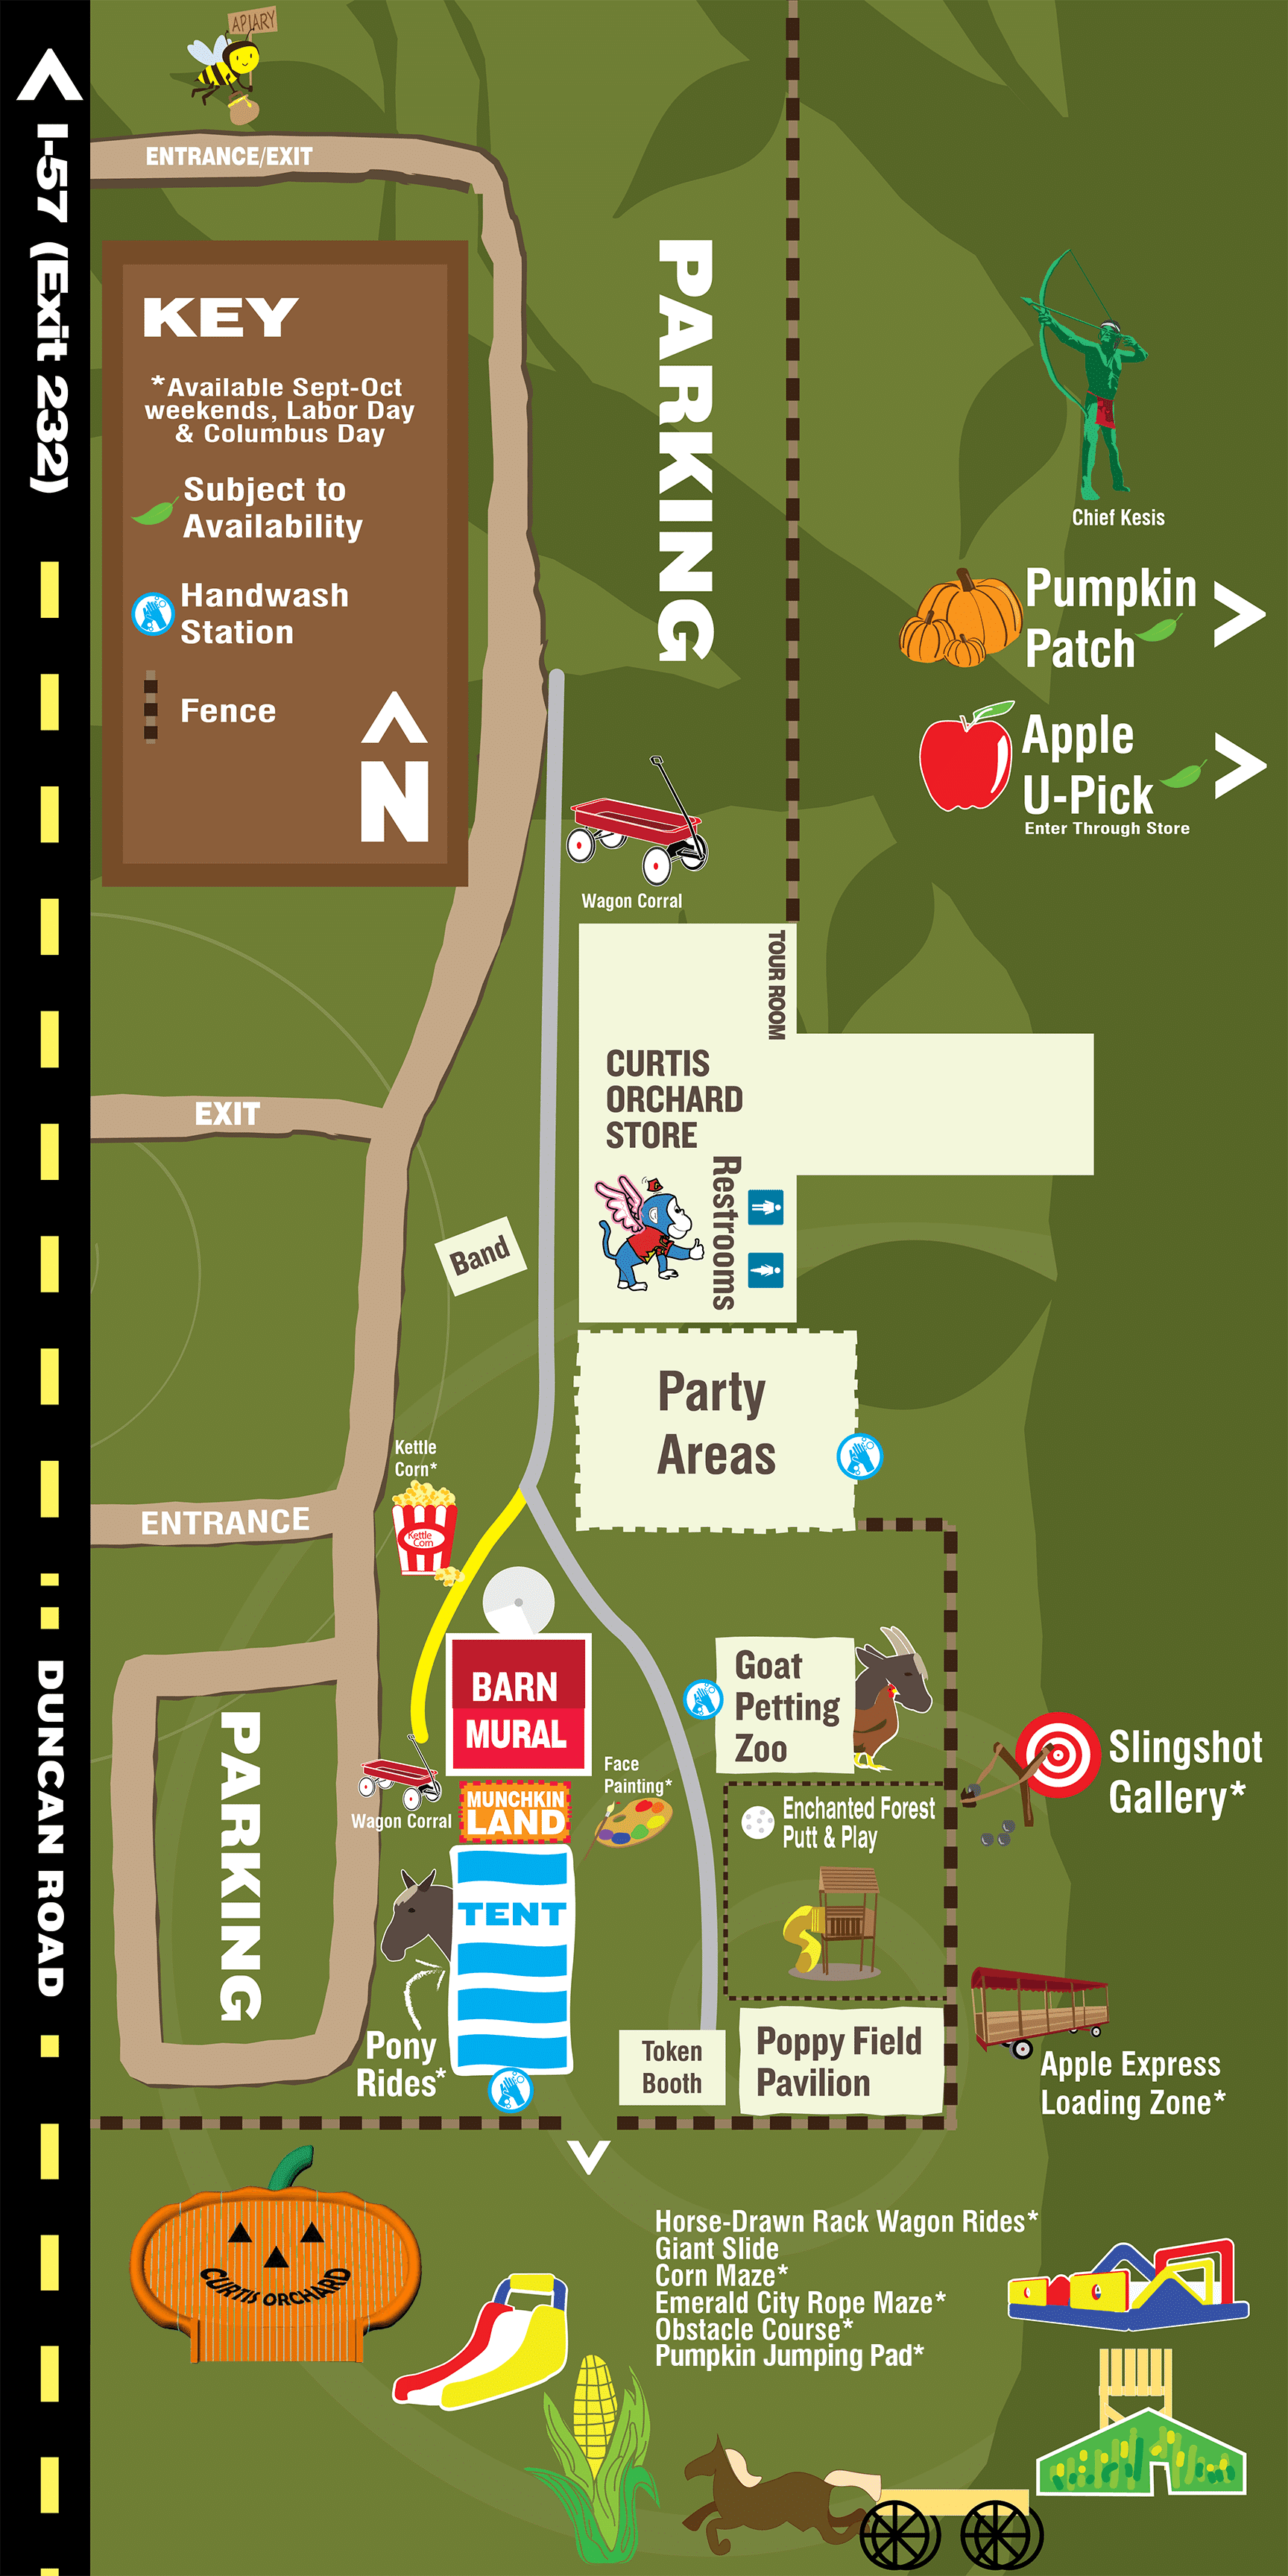 activities map for Curtis Orchard